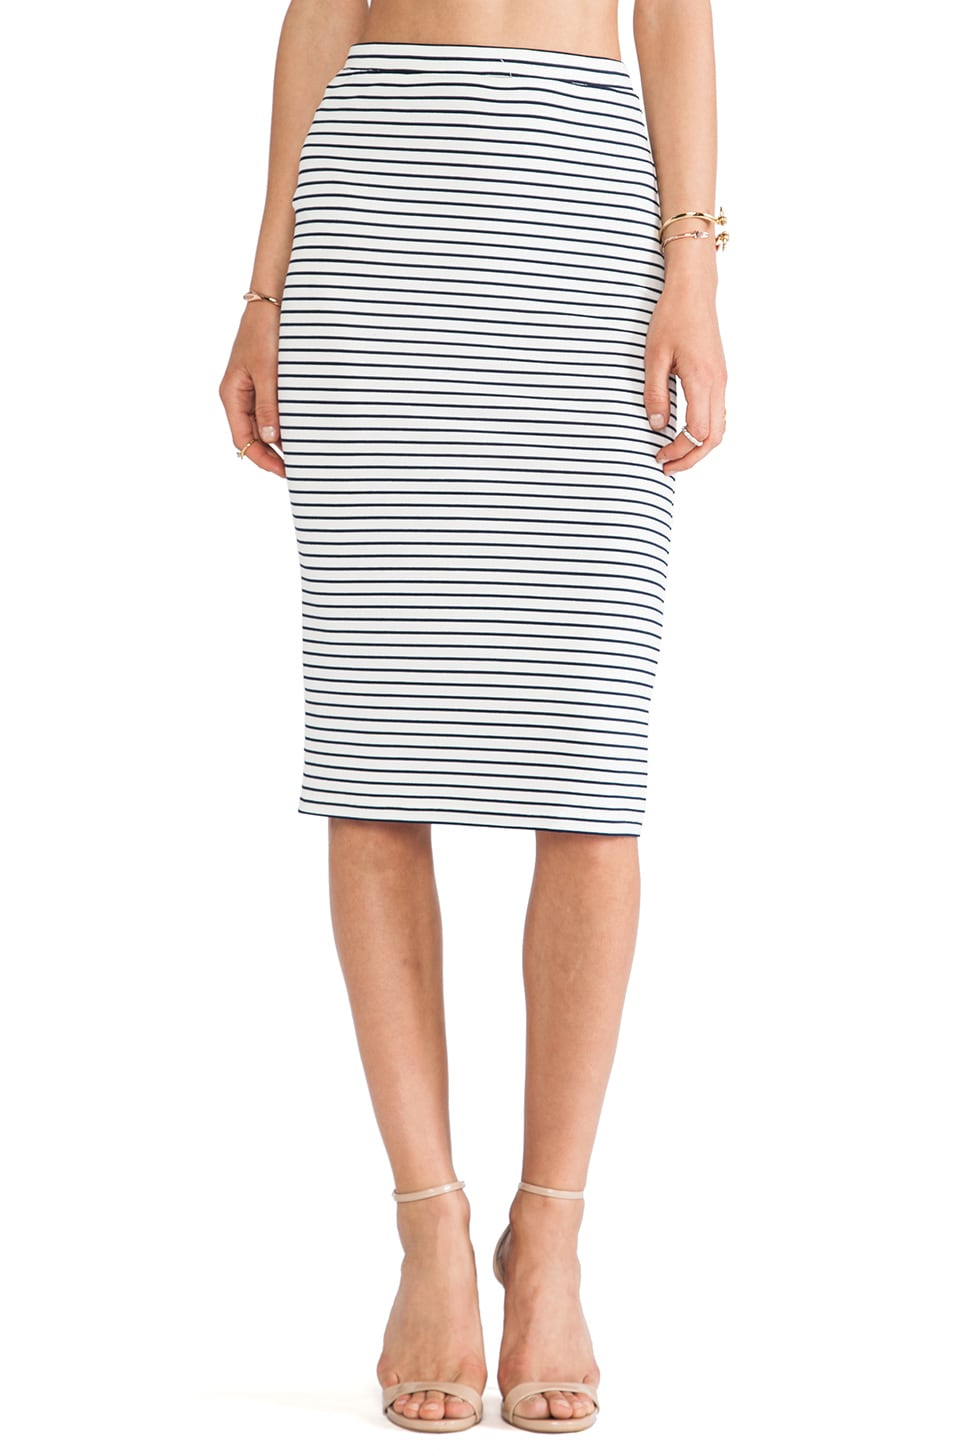 Lovers + Friends Day To Night Pencil Skirt in Stripe